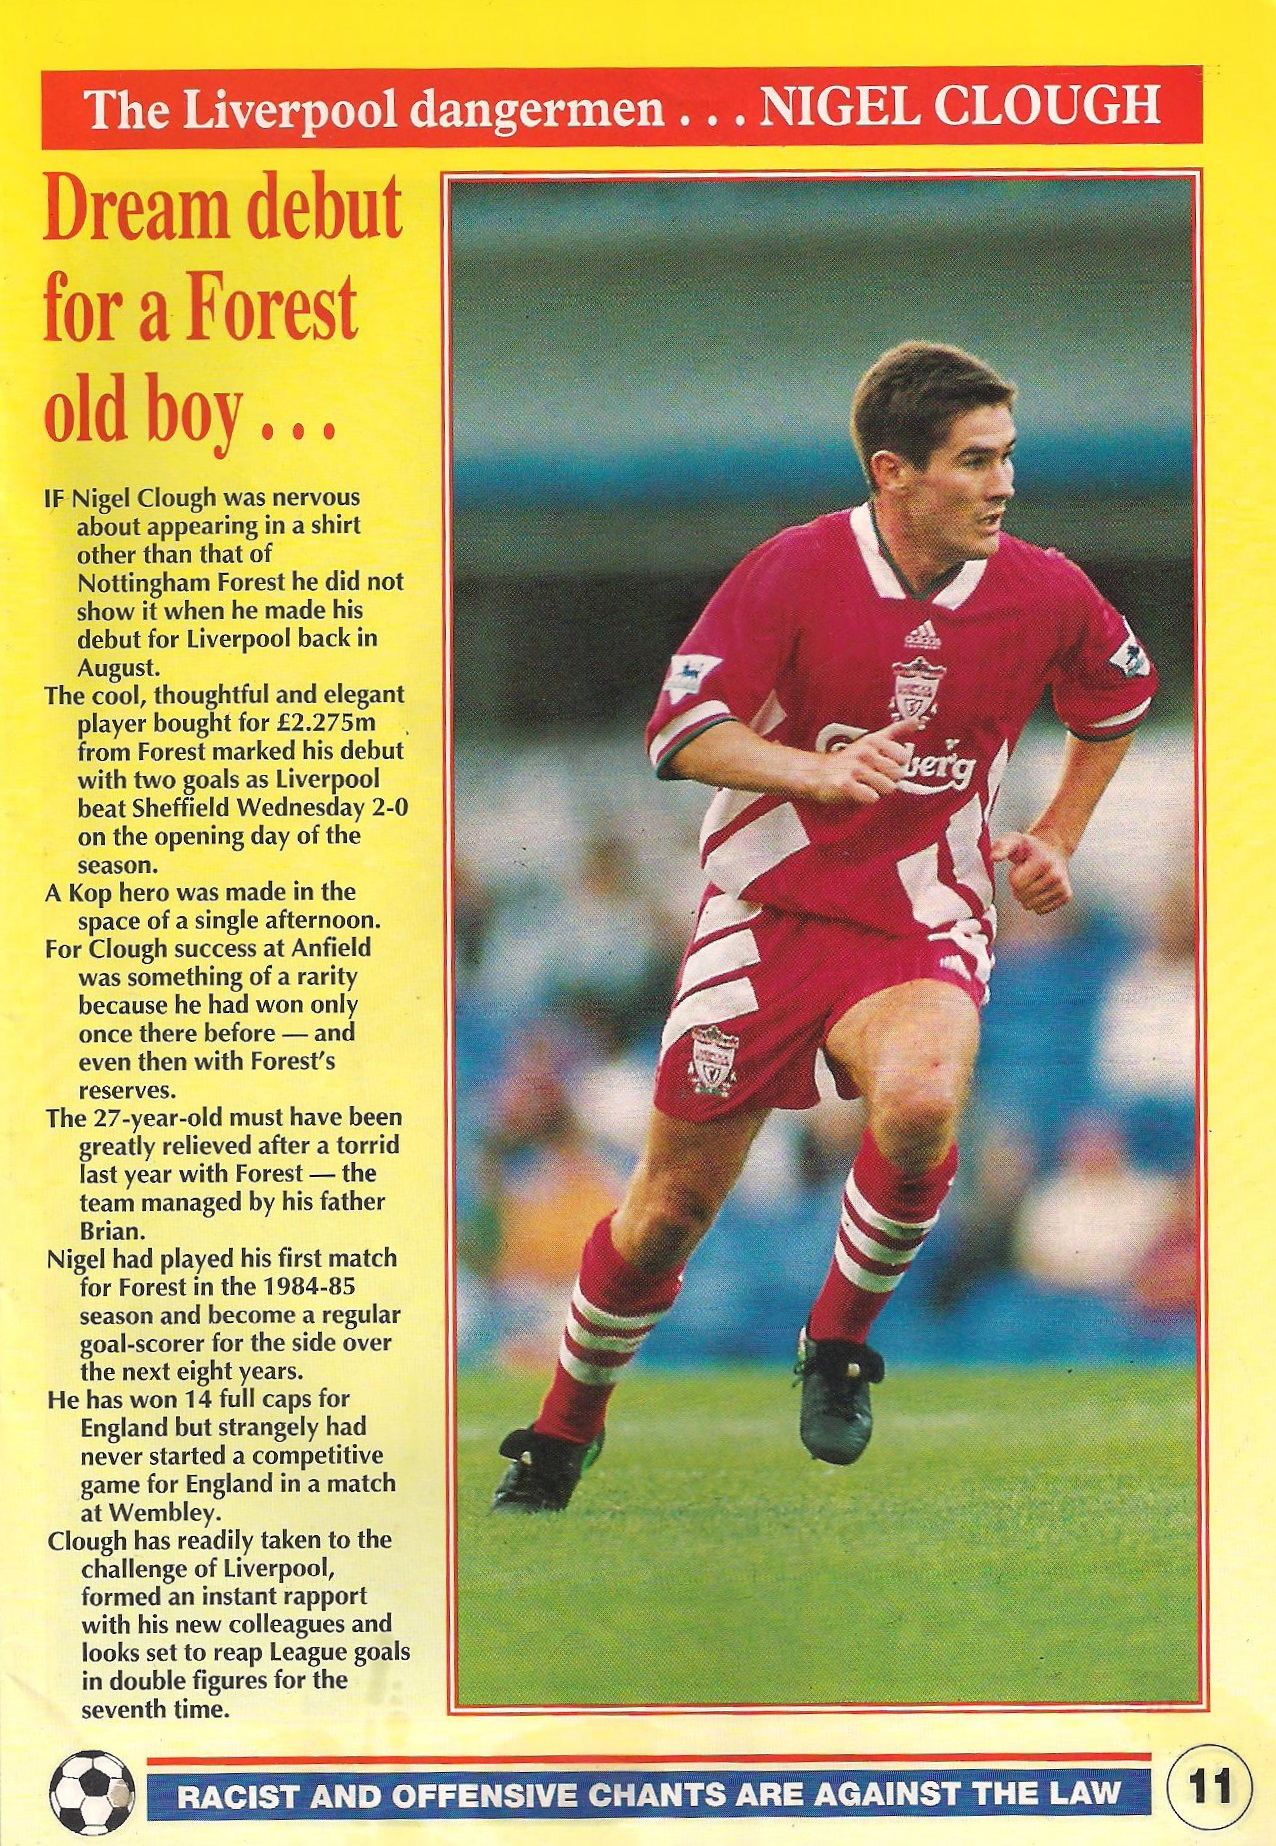 Dream debut for a Forest old boy - LFC match programme 1993